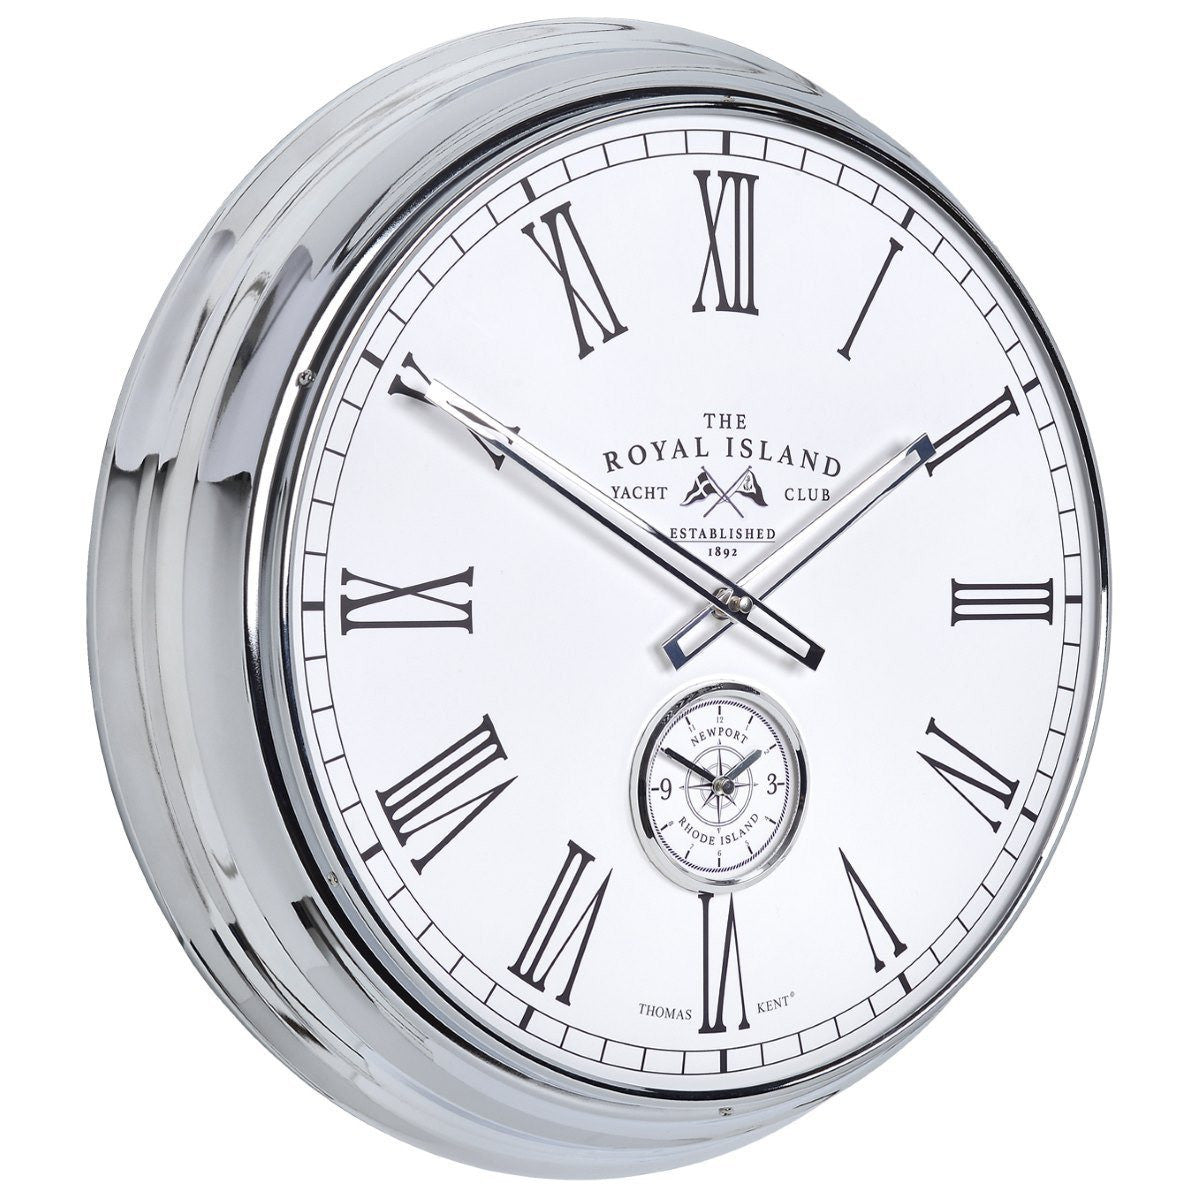 Thomas Kent Royal Island Yacht Club Wall Clock, White, 51cm